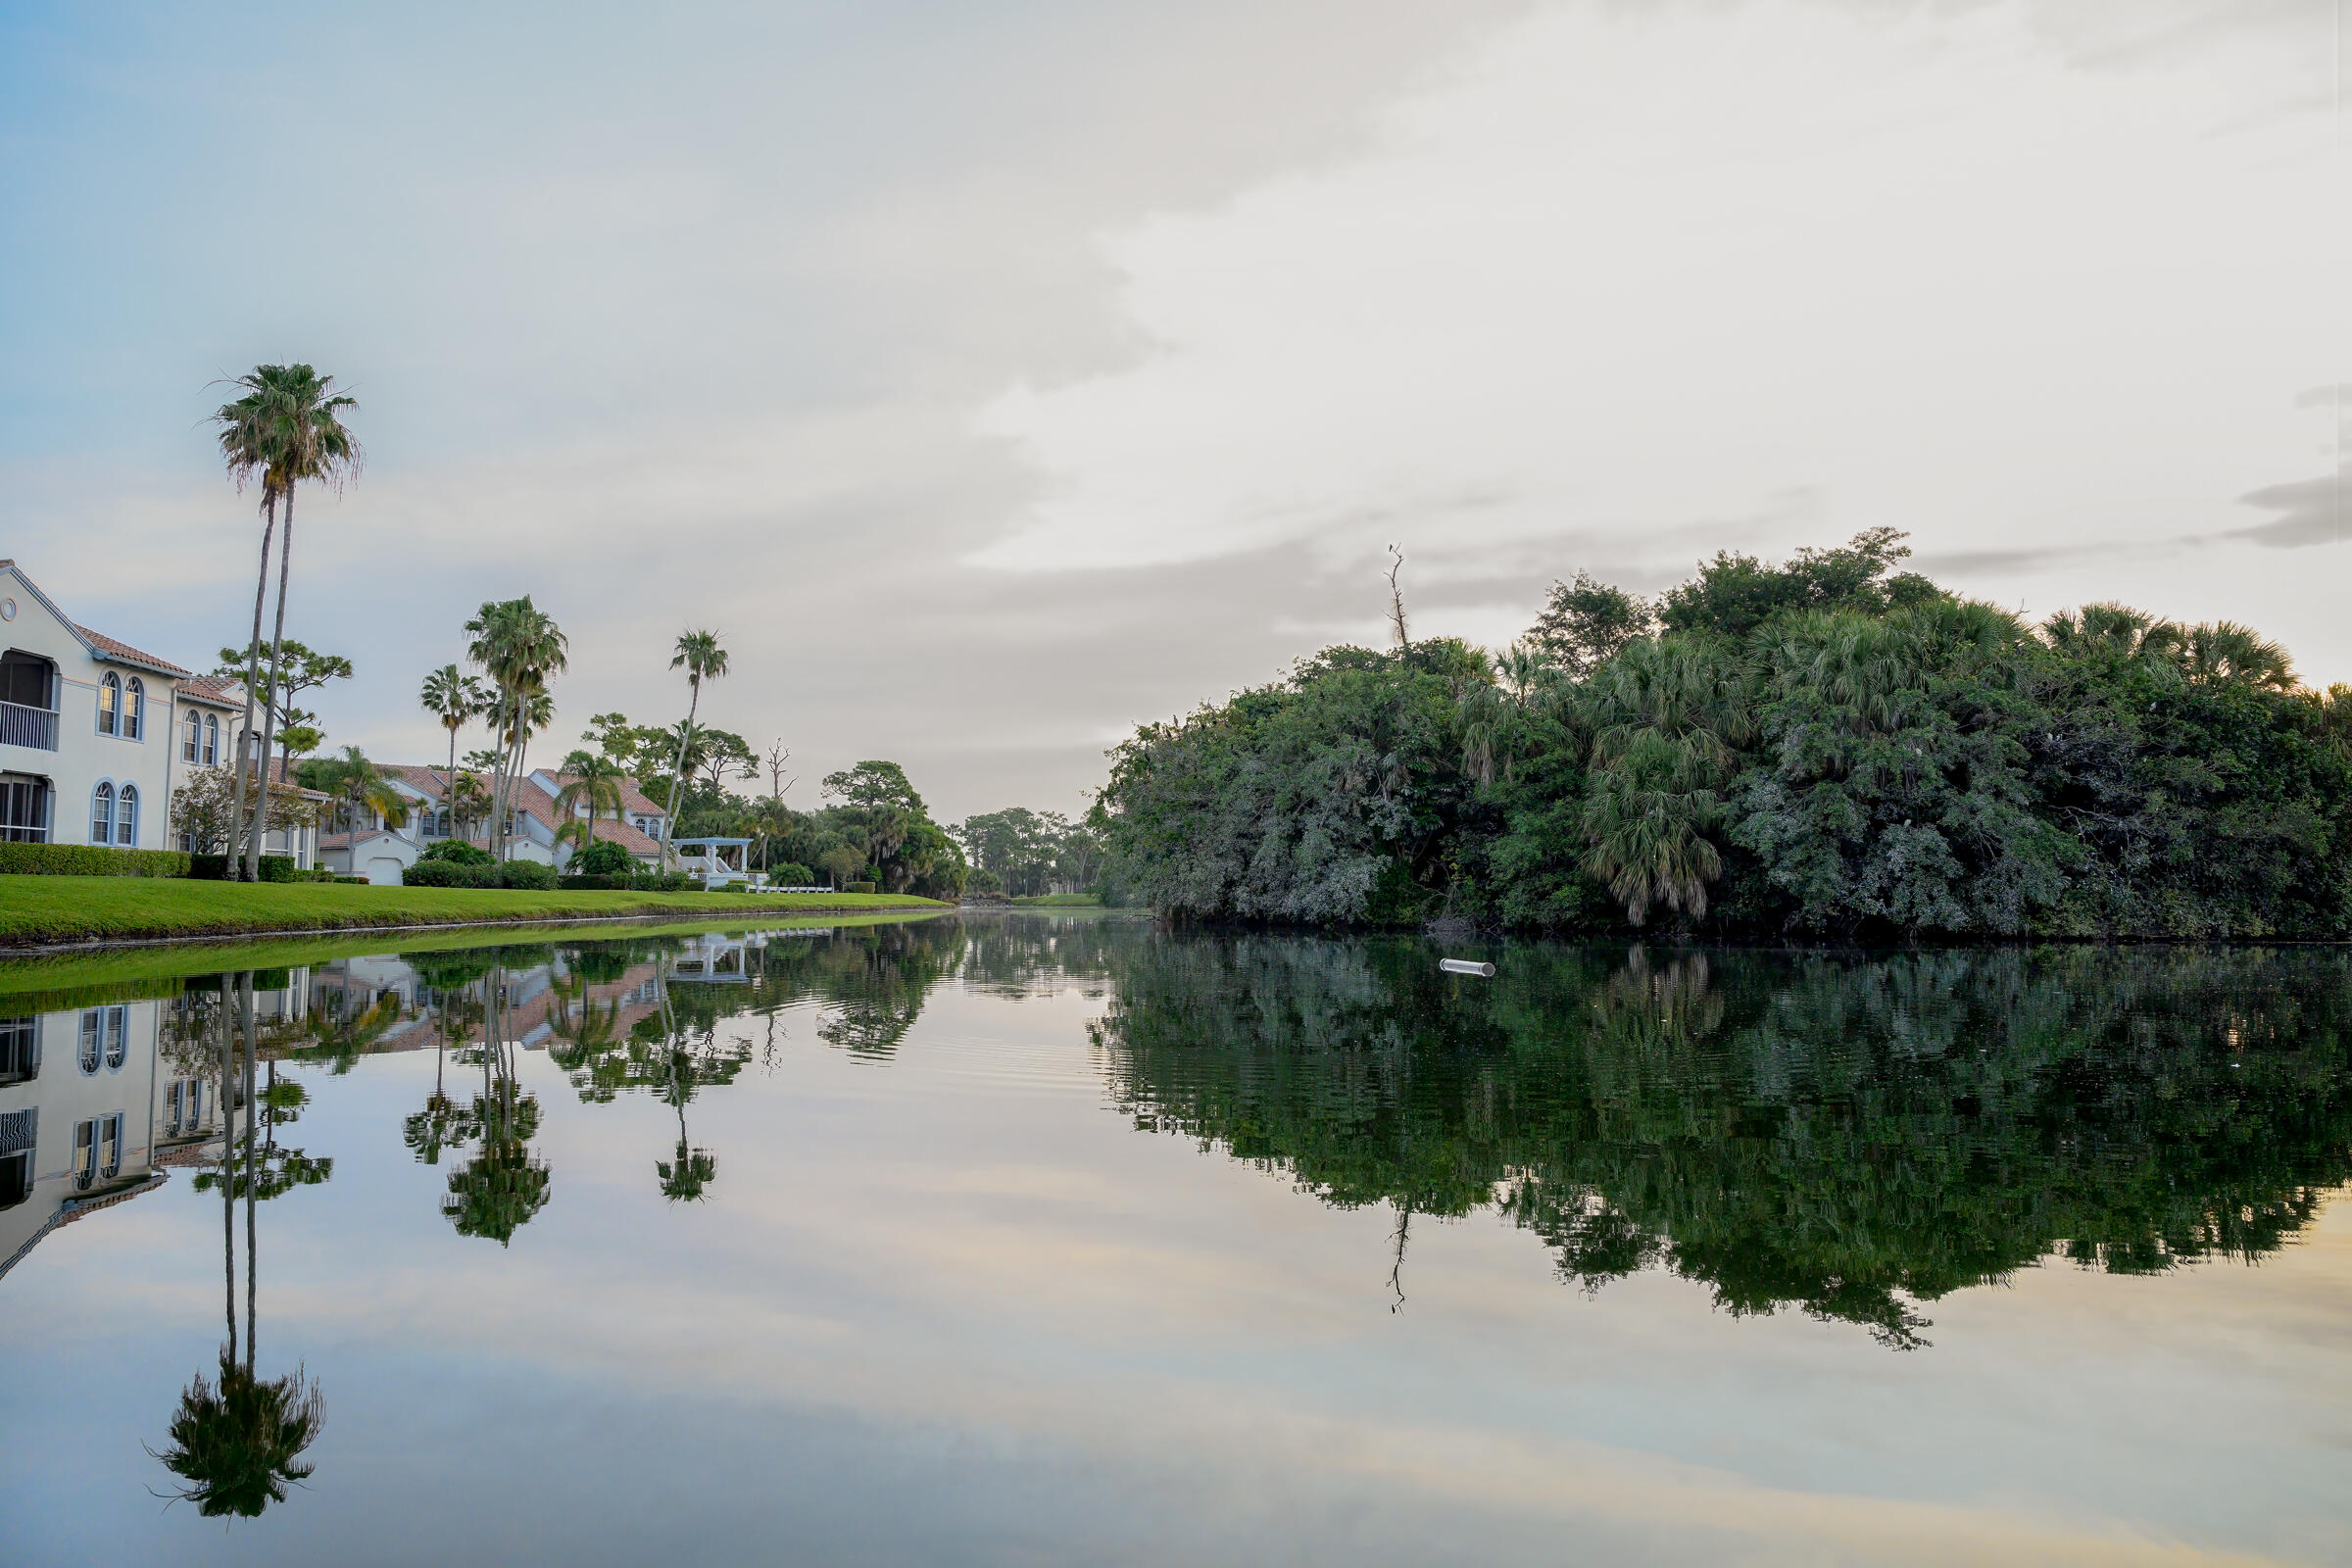 A waterway bisects wild-looking islands full of trees to the right and a manicured row of stucco-roofed houses, lawns, and palm trees to the left.